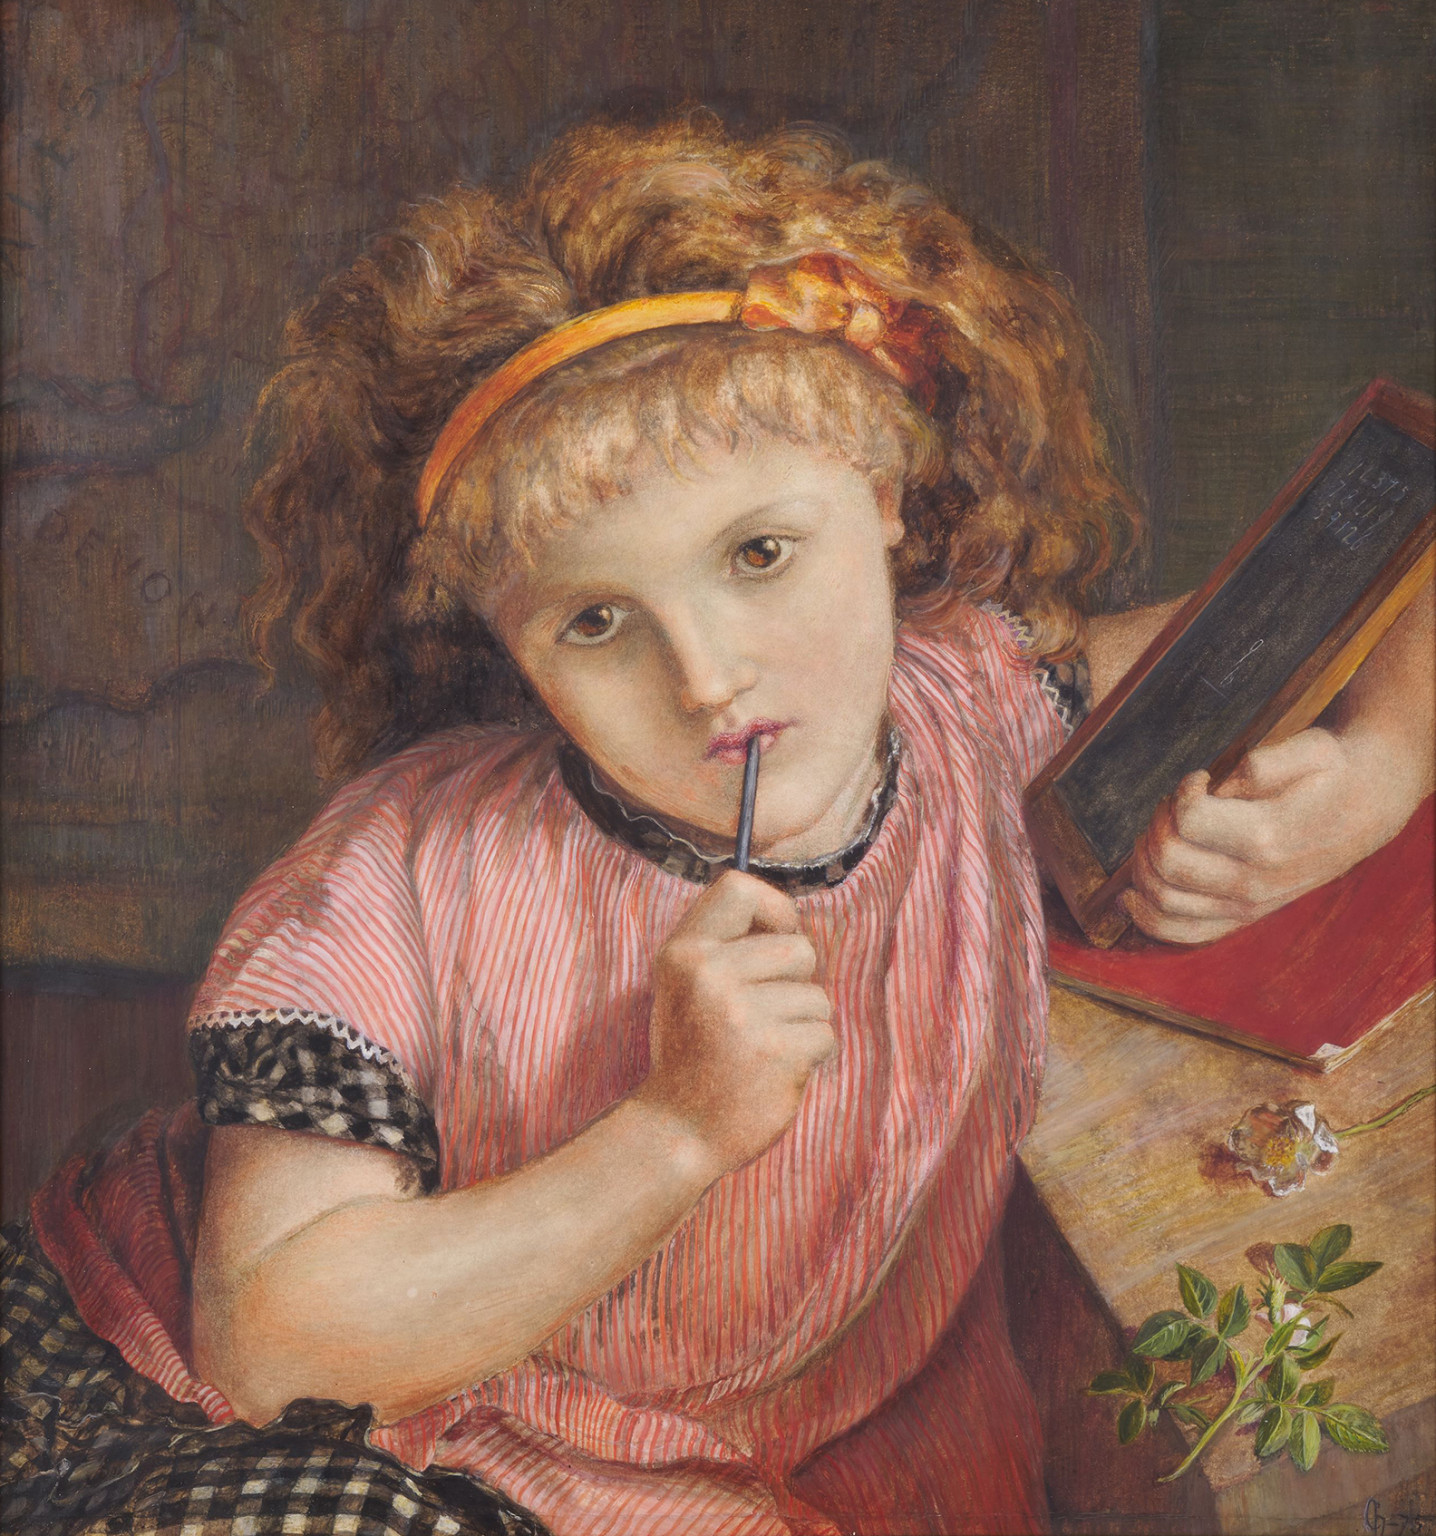 Catherine Madox Brown, A Deep Problem: 9 and 6 make -, 1875, Watercolour on paper, Birmingham Museums Trust.  Photo by Birmingham Museums Trust, licensed under CC0